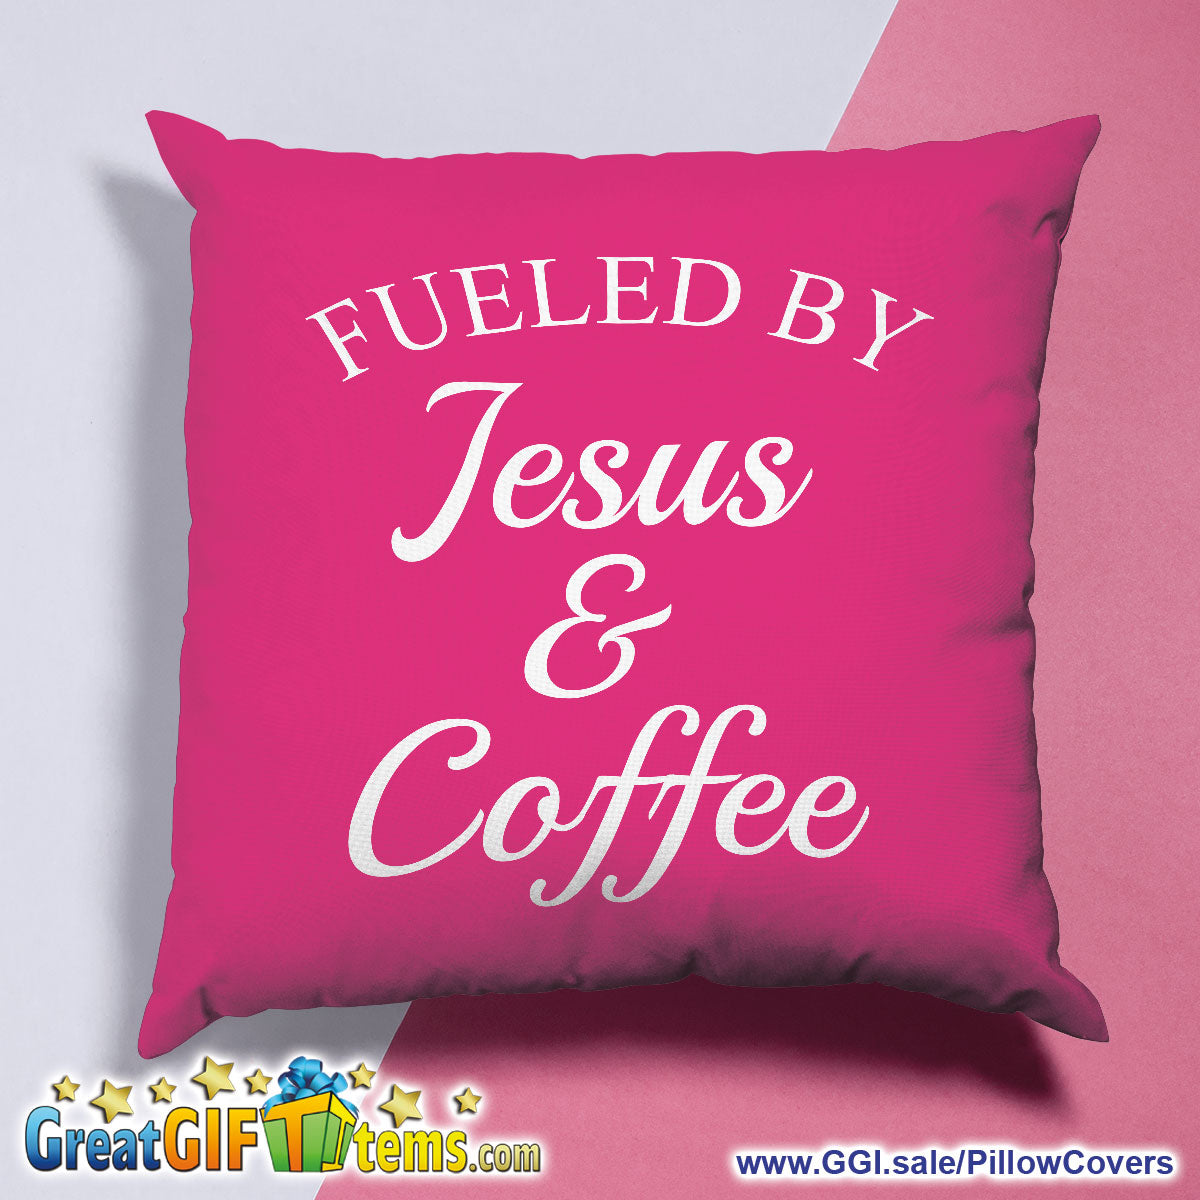 Fueled By Jesus And Coffee Throw Pillow Cover